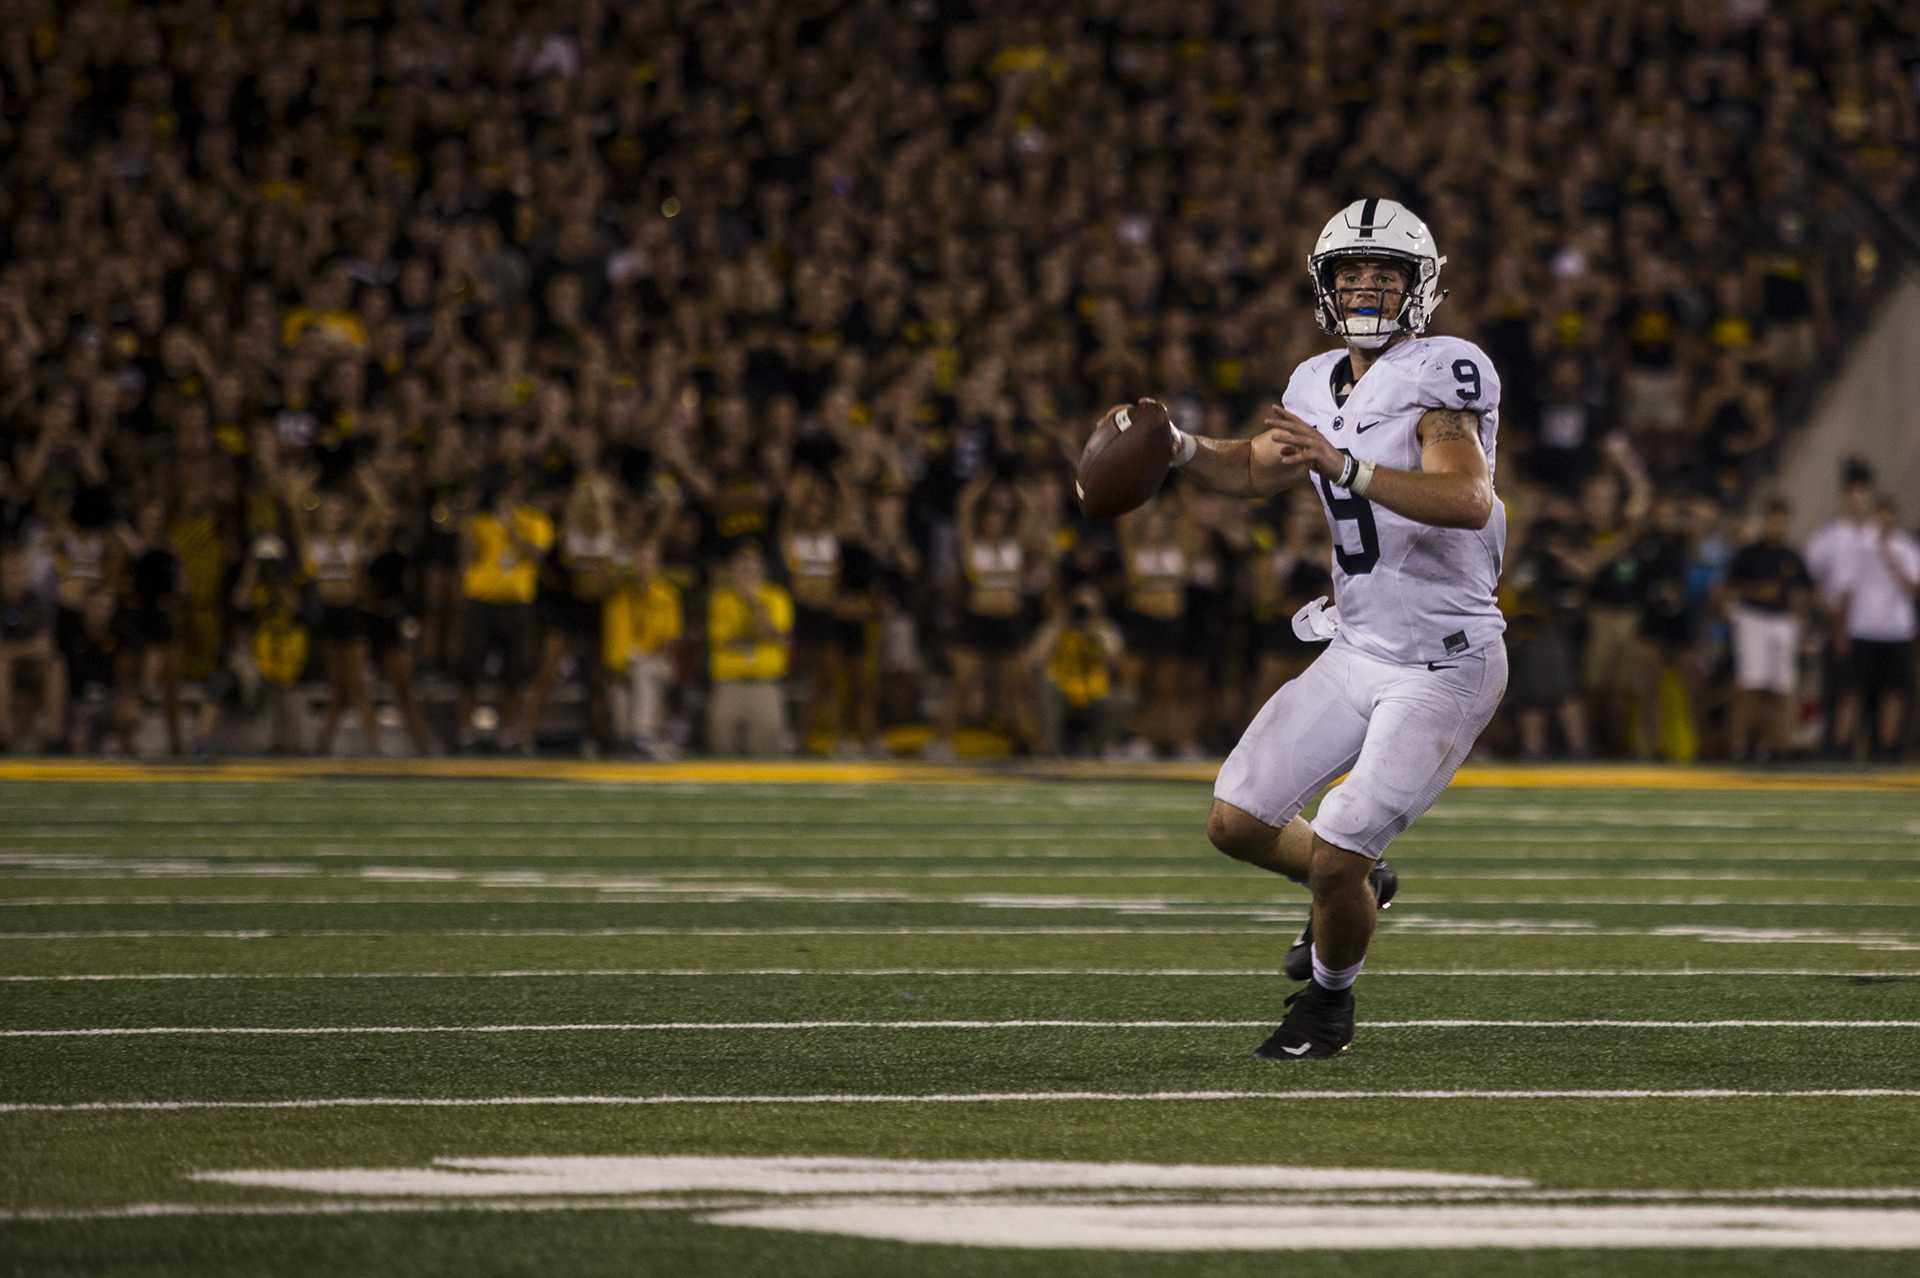 Penn State quarterback Trace McSorley throws during the 4th quarter of Iowa's game against Penn State at Kinnick Stadium on Sept. 23, 2017. Penn State defeated Iowa 21-19 on a last second touchdown past. (Nick Rohlman/The Daily Iowan)